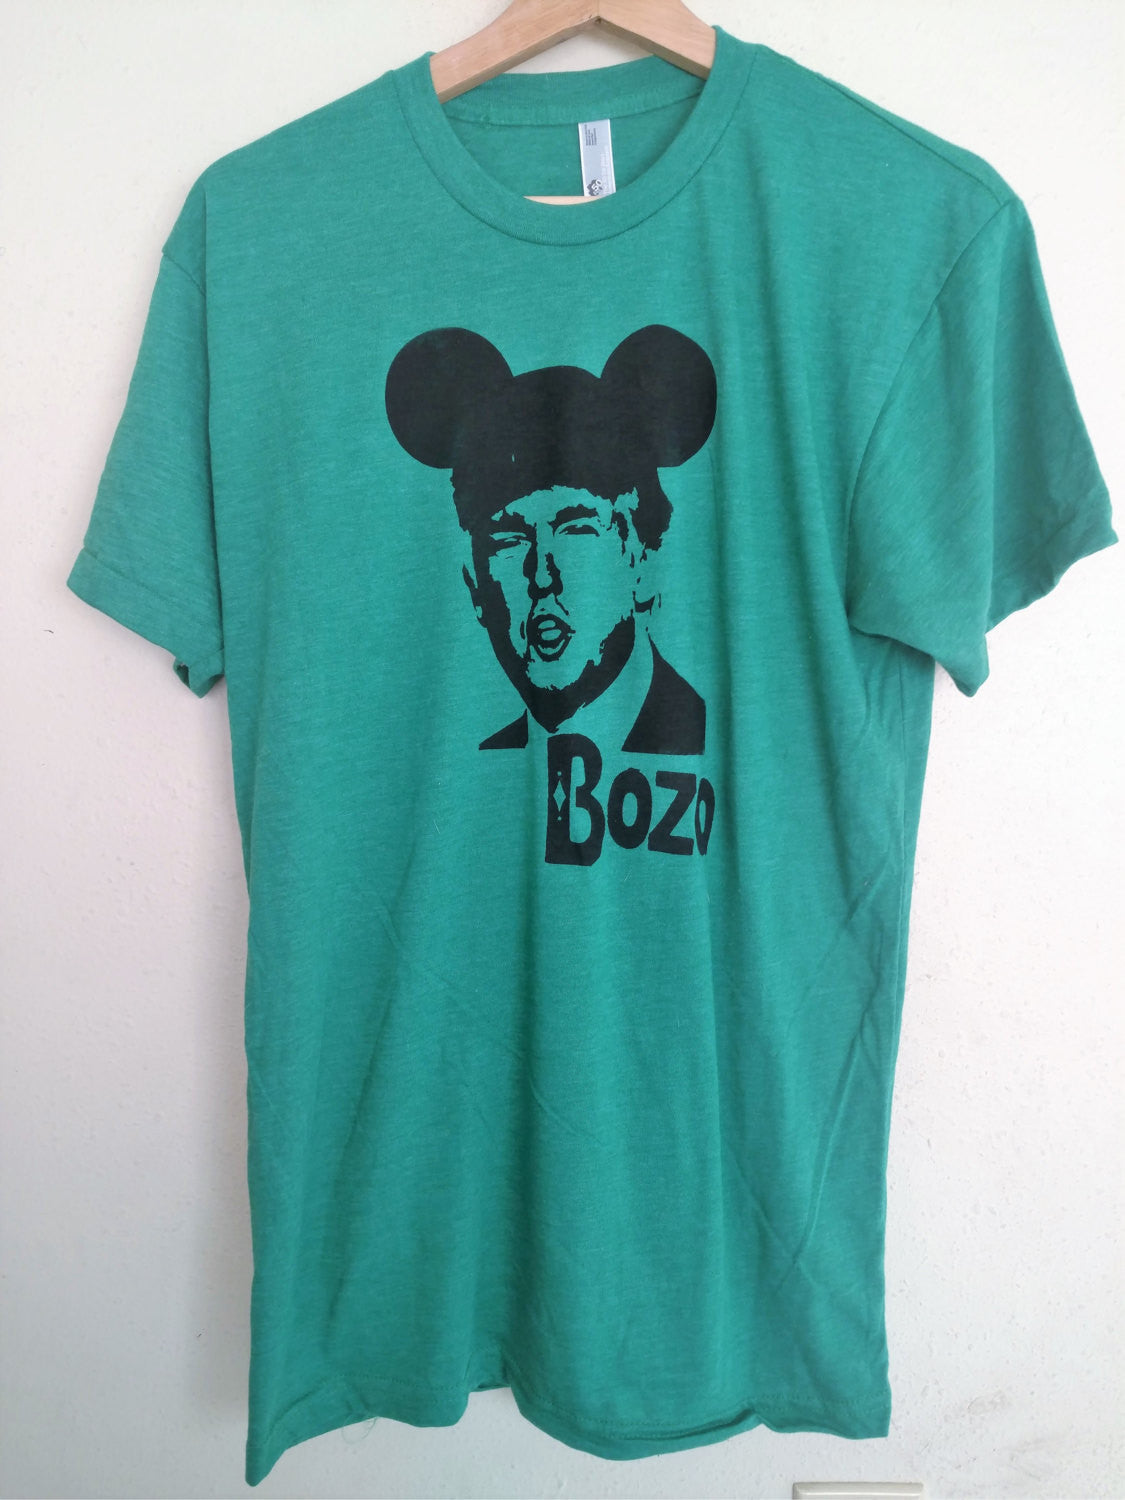 "Organic Made in USA T-shirt ""Bozo"" the clown featuring Donald Trump Handmade by Le Fou"